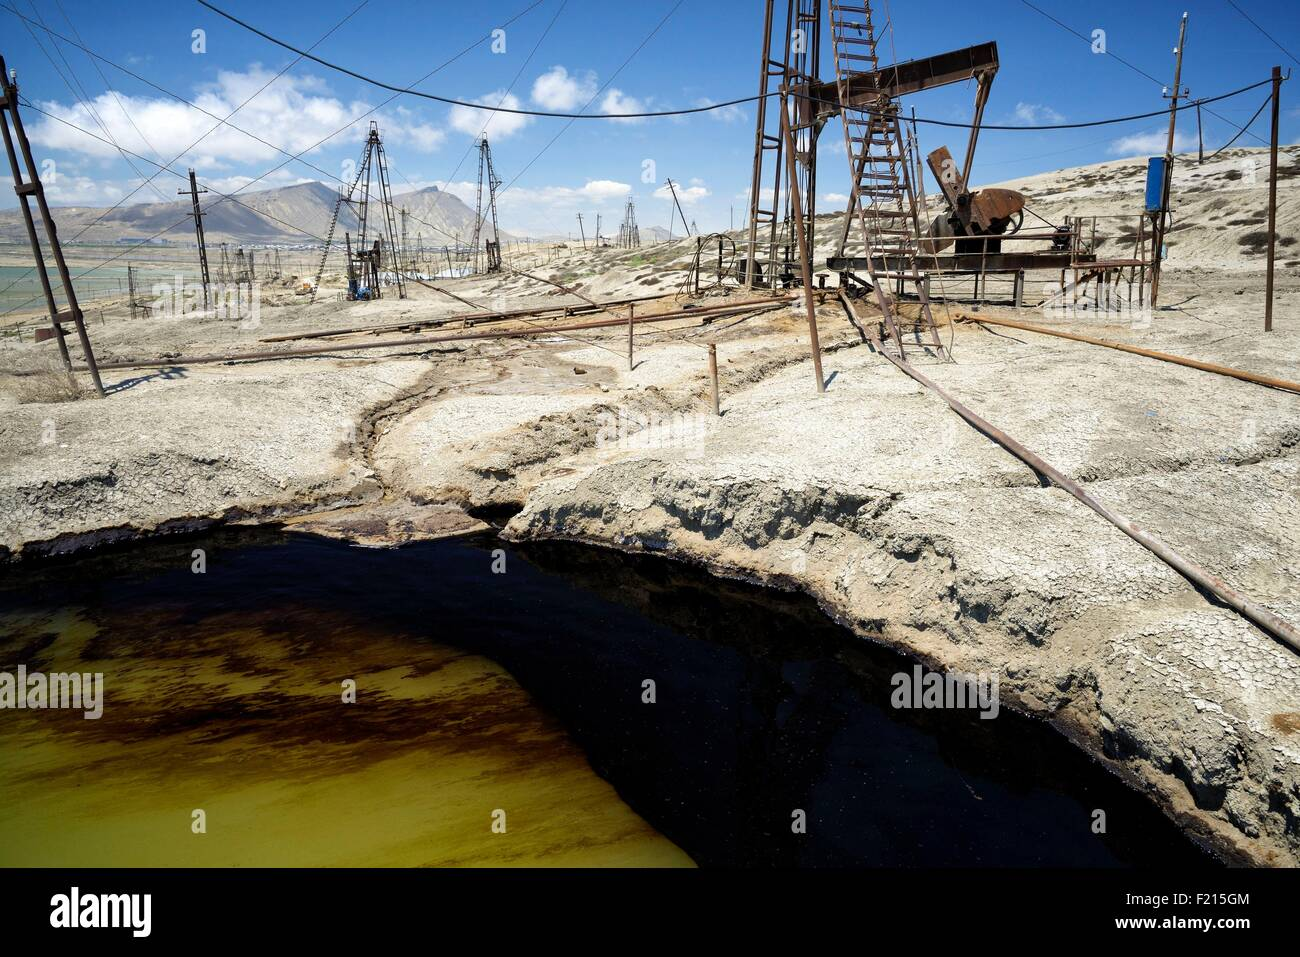 Azerbaijan, Baku, Bibi Heybat, nodding donkey oil pumps pumping oil up from the an oil field - Stock Image